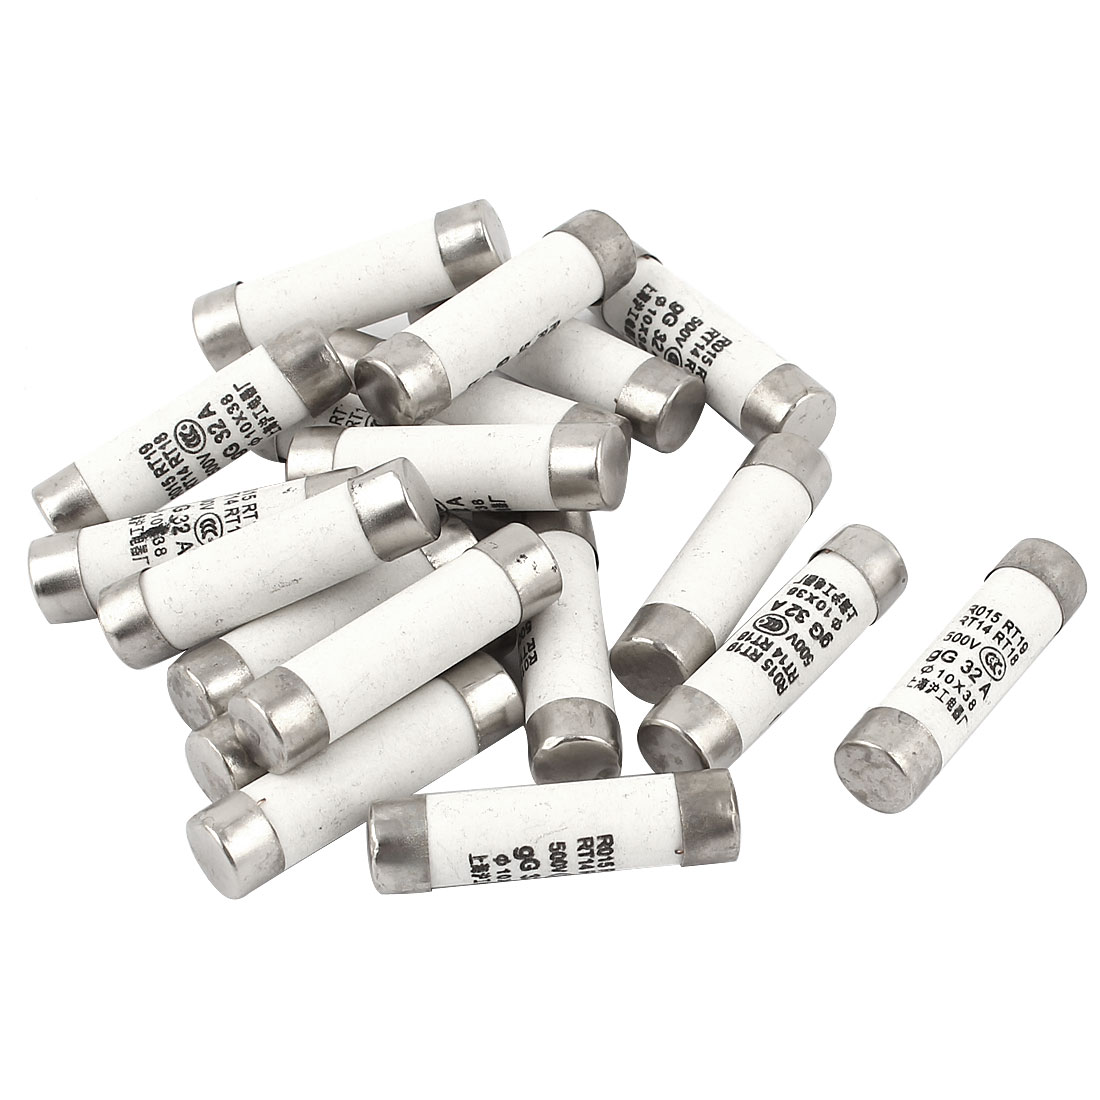 20Pcs R015RT19 Cylindrical Contact Cap Fuse Links 500V 32A 10x38mm